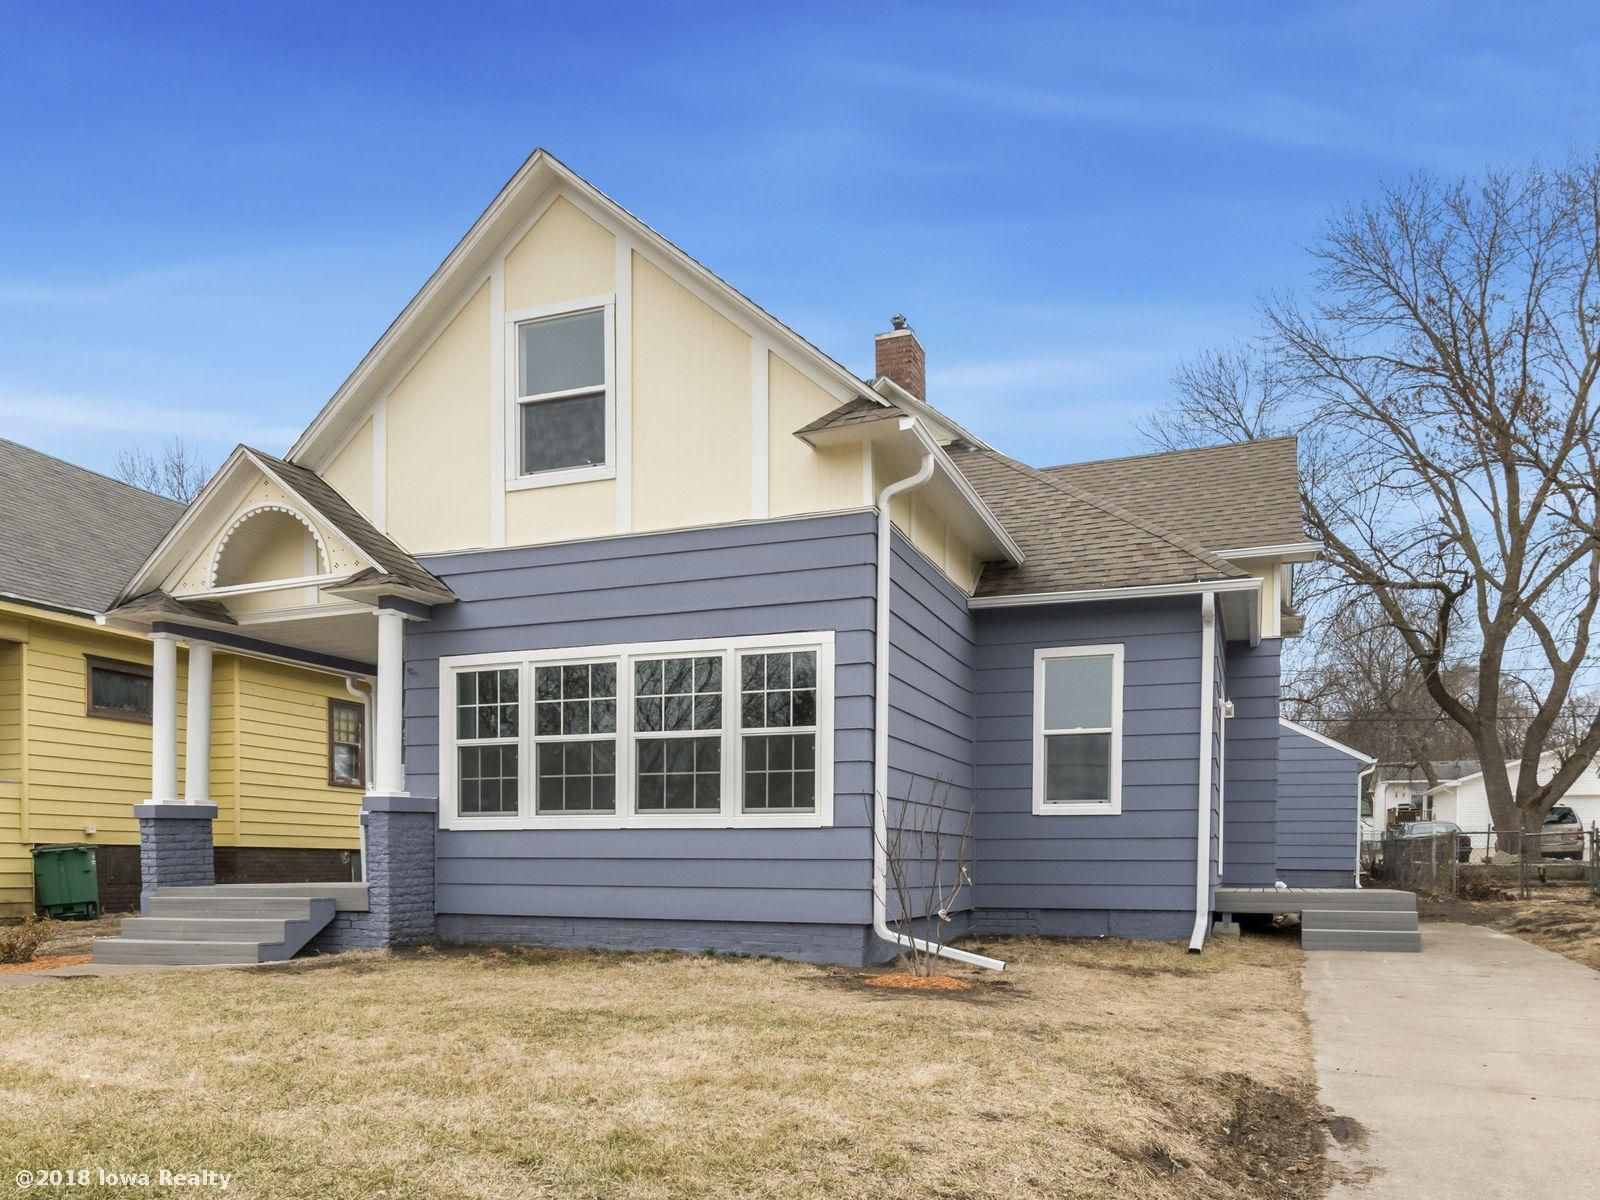 528 5th st west des moines ia 50265 recently sold trulia